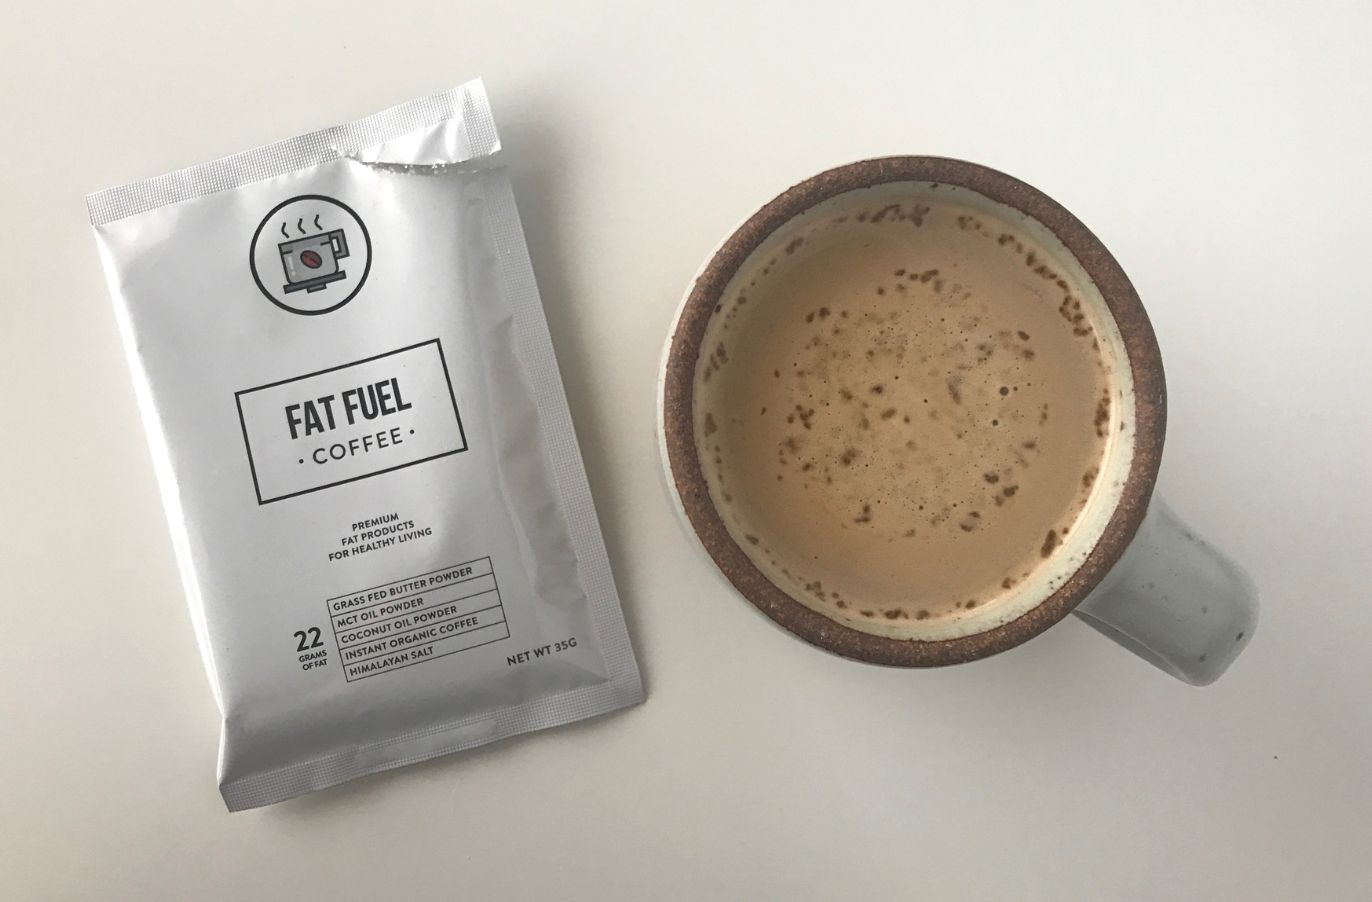 a packet of fat fuel coffee next to a mug of Keto Coffee on a white surface